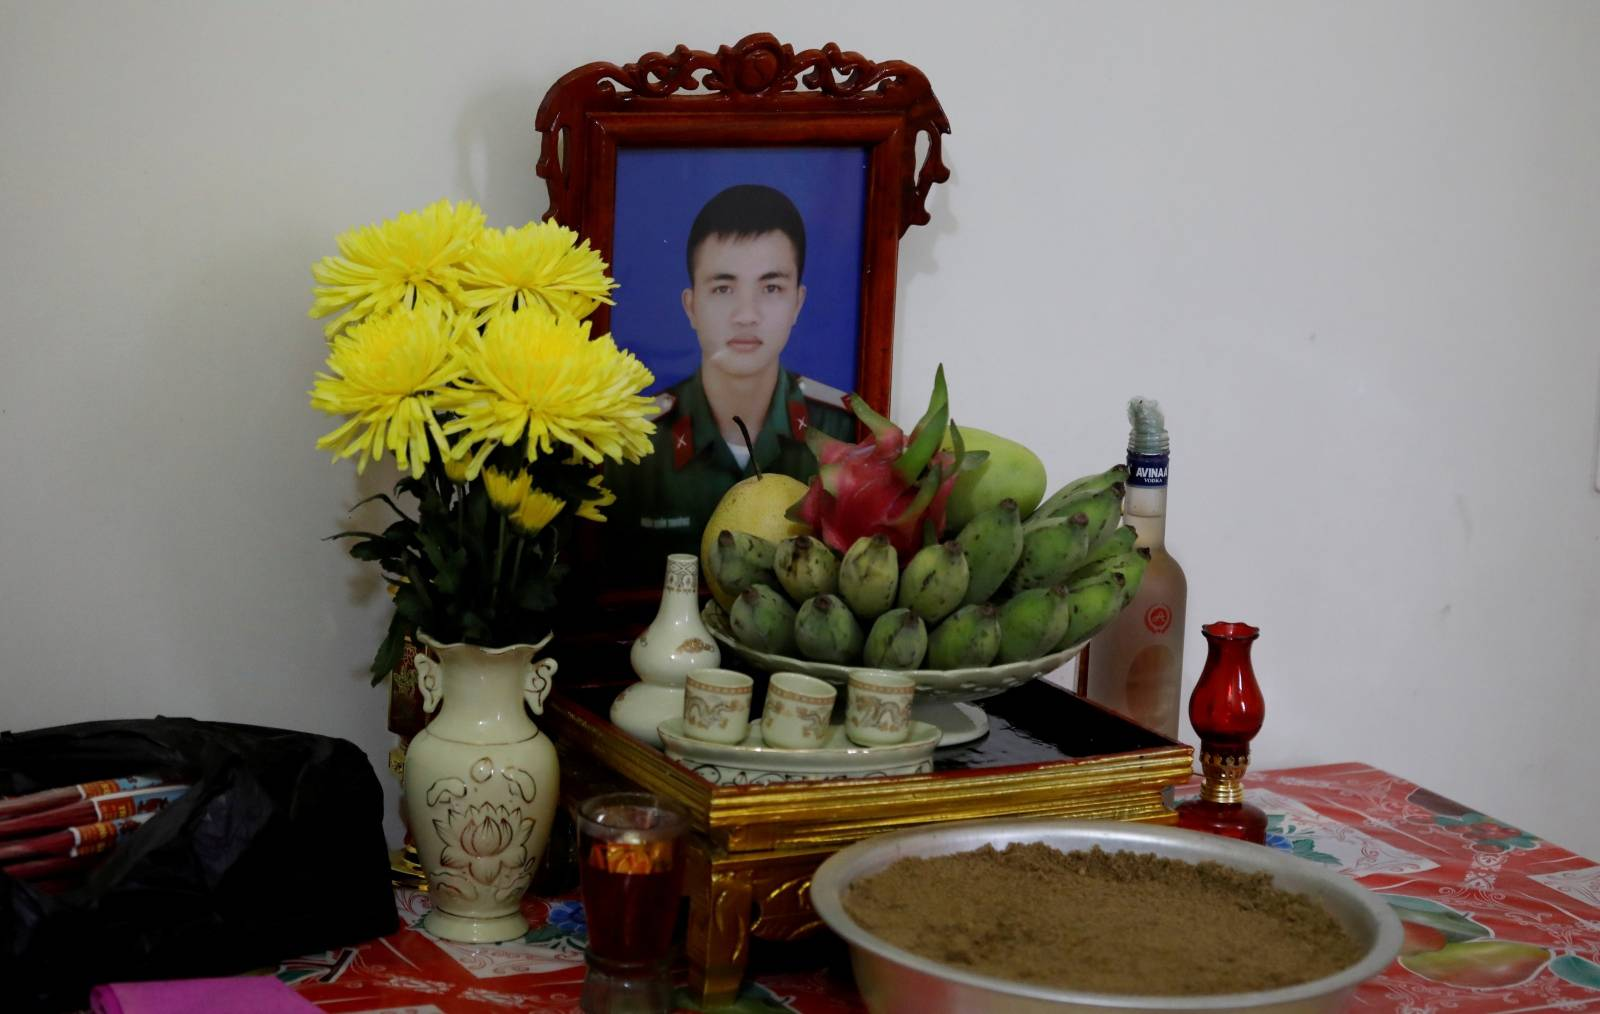 An image of Nguyen Dinh Tu, a Vietnamese suspected to be among dead victims found in a lorry in Britain, is seen at a table at his home in Nghe An province